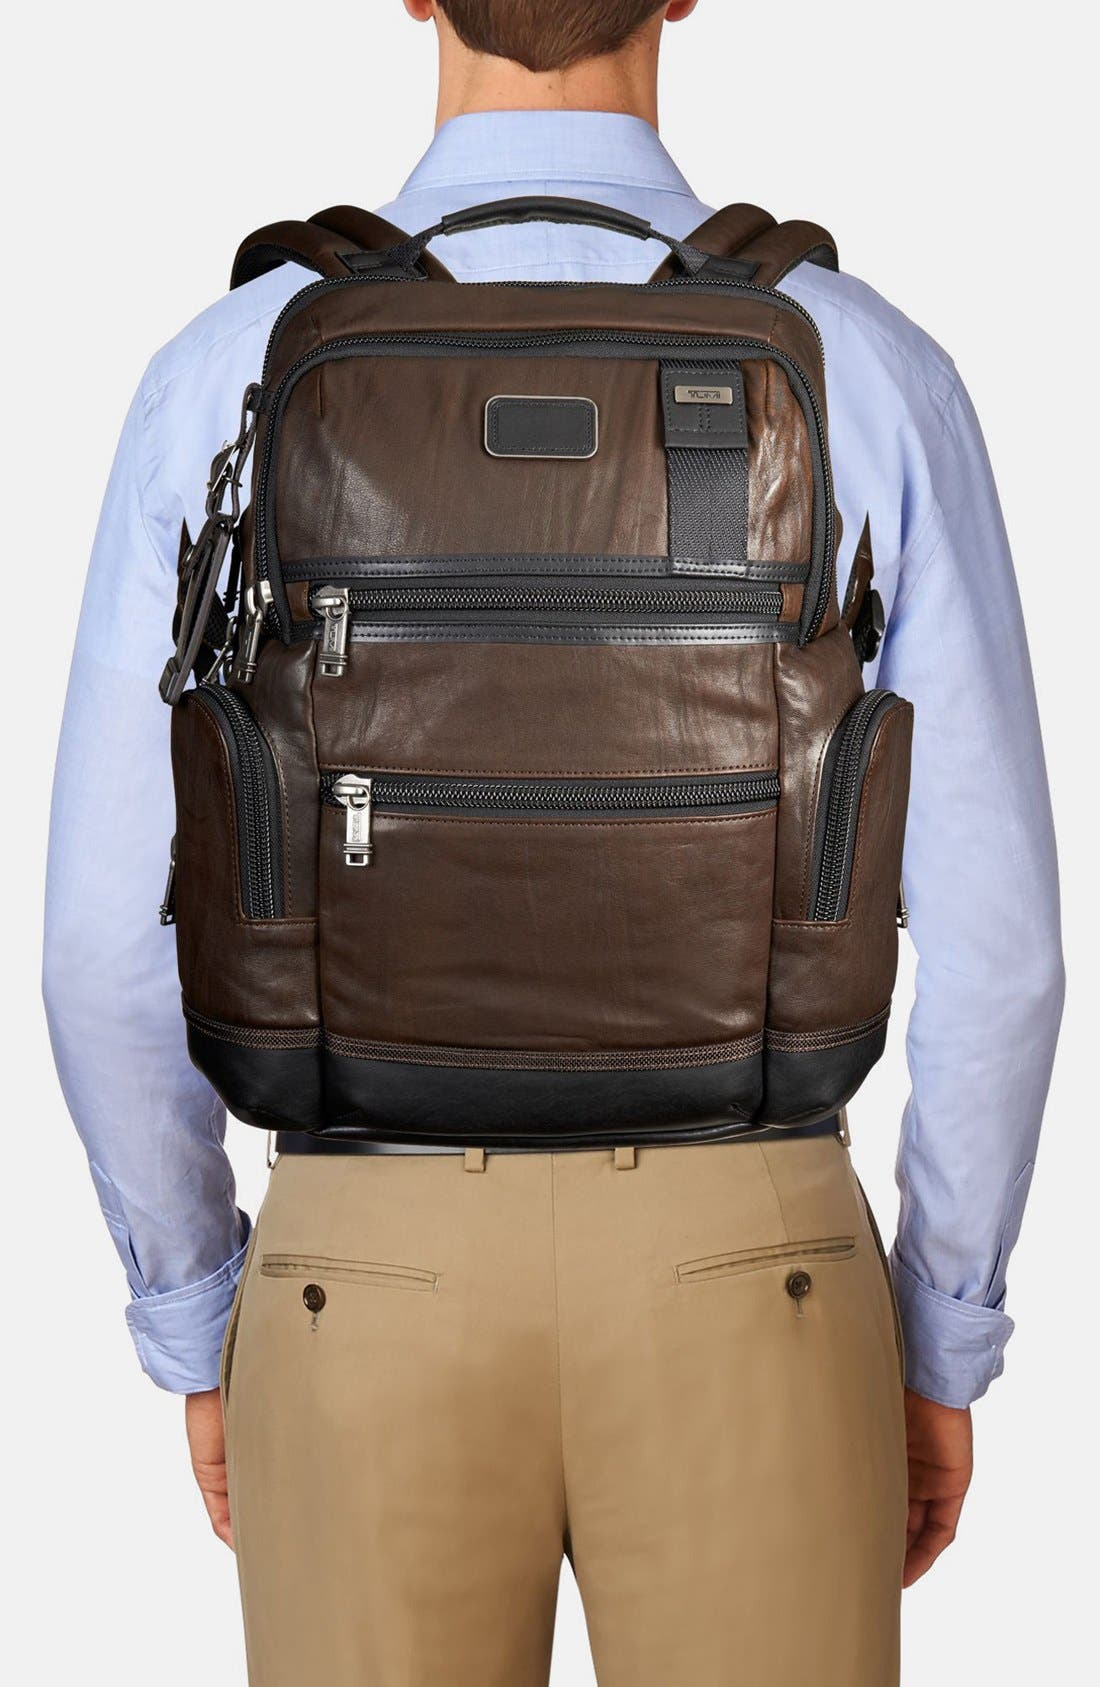 'Bravo - Knox' Leather Backpack,                             Alternate thumbnail 4, color,                             204